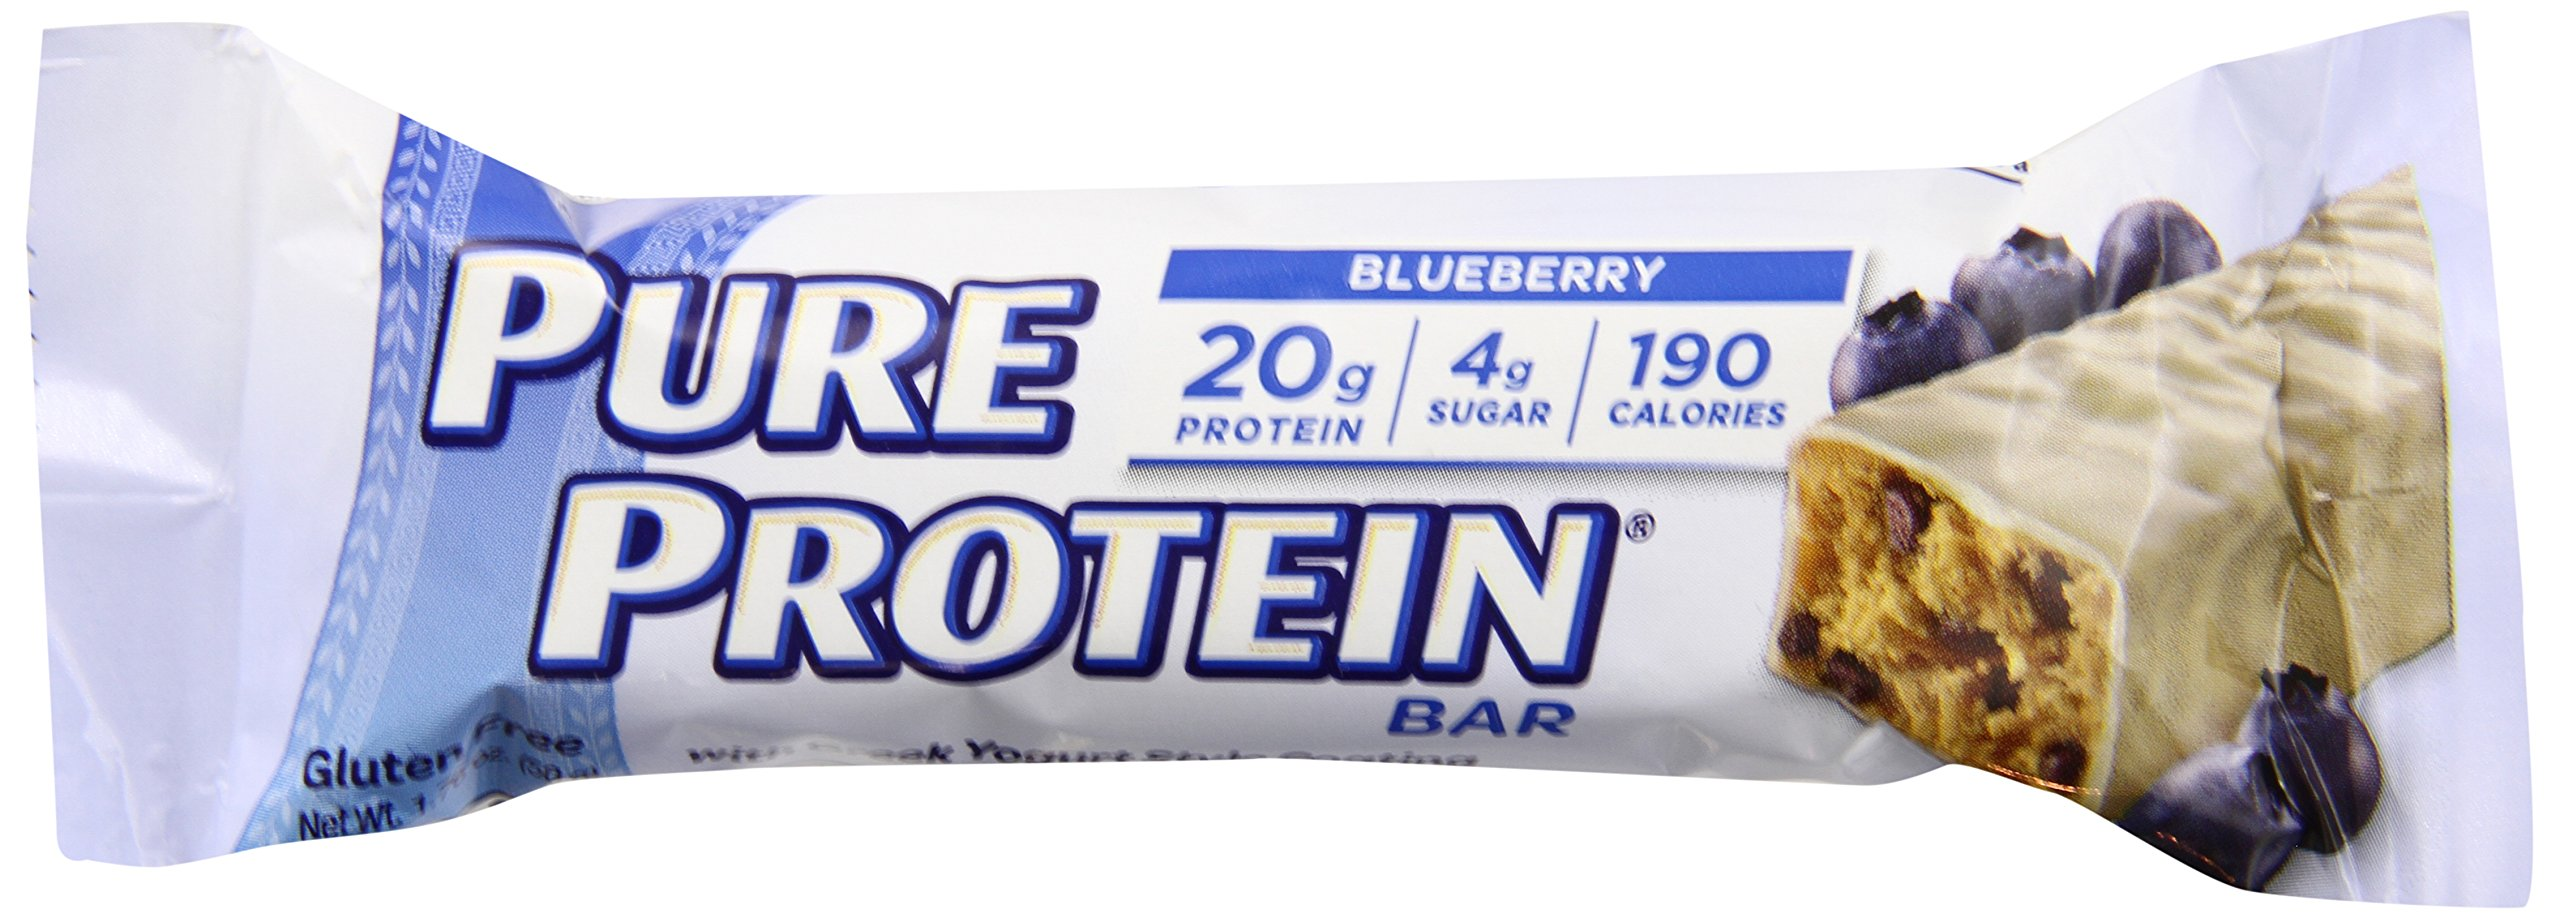 Pure Protein Bars, High Protein, Nutritious Snacks to Support Energy, Low Sugar, Gluten Free, Blueberry Greek Yogurt, 1.76 oz, 6 Count